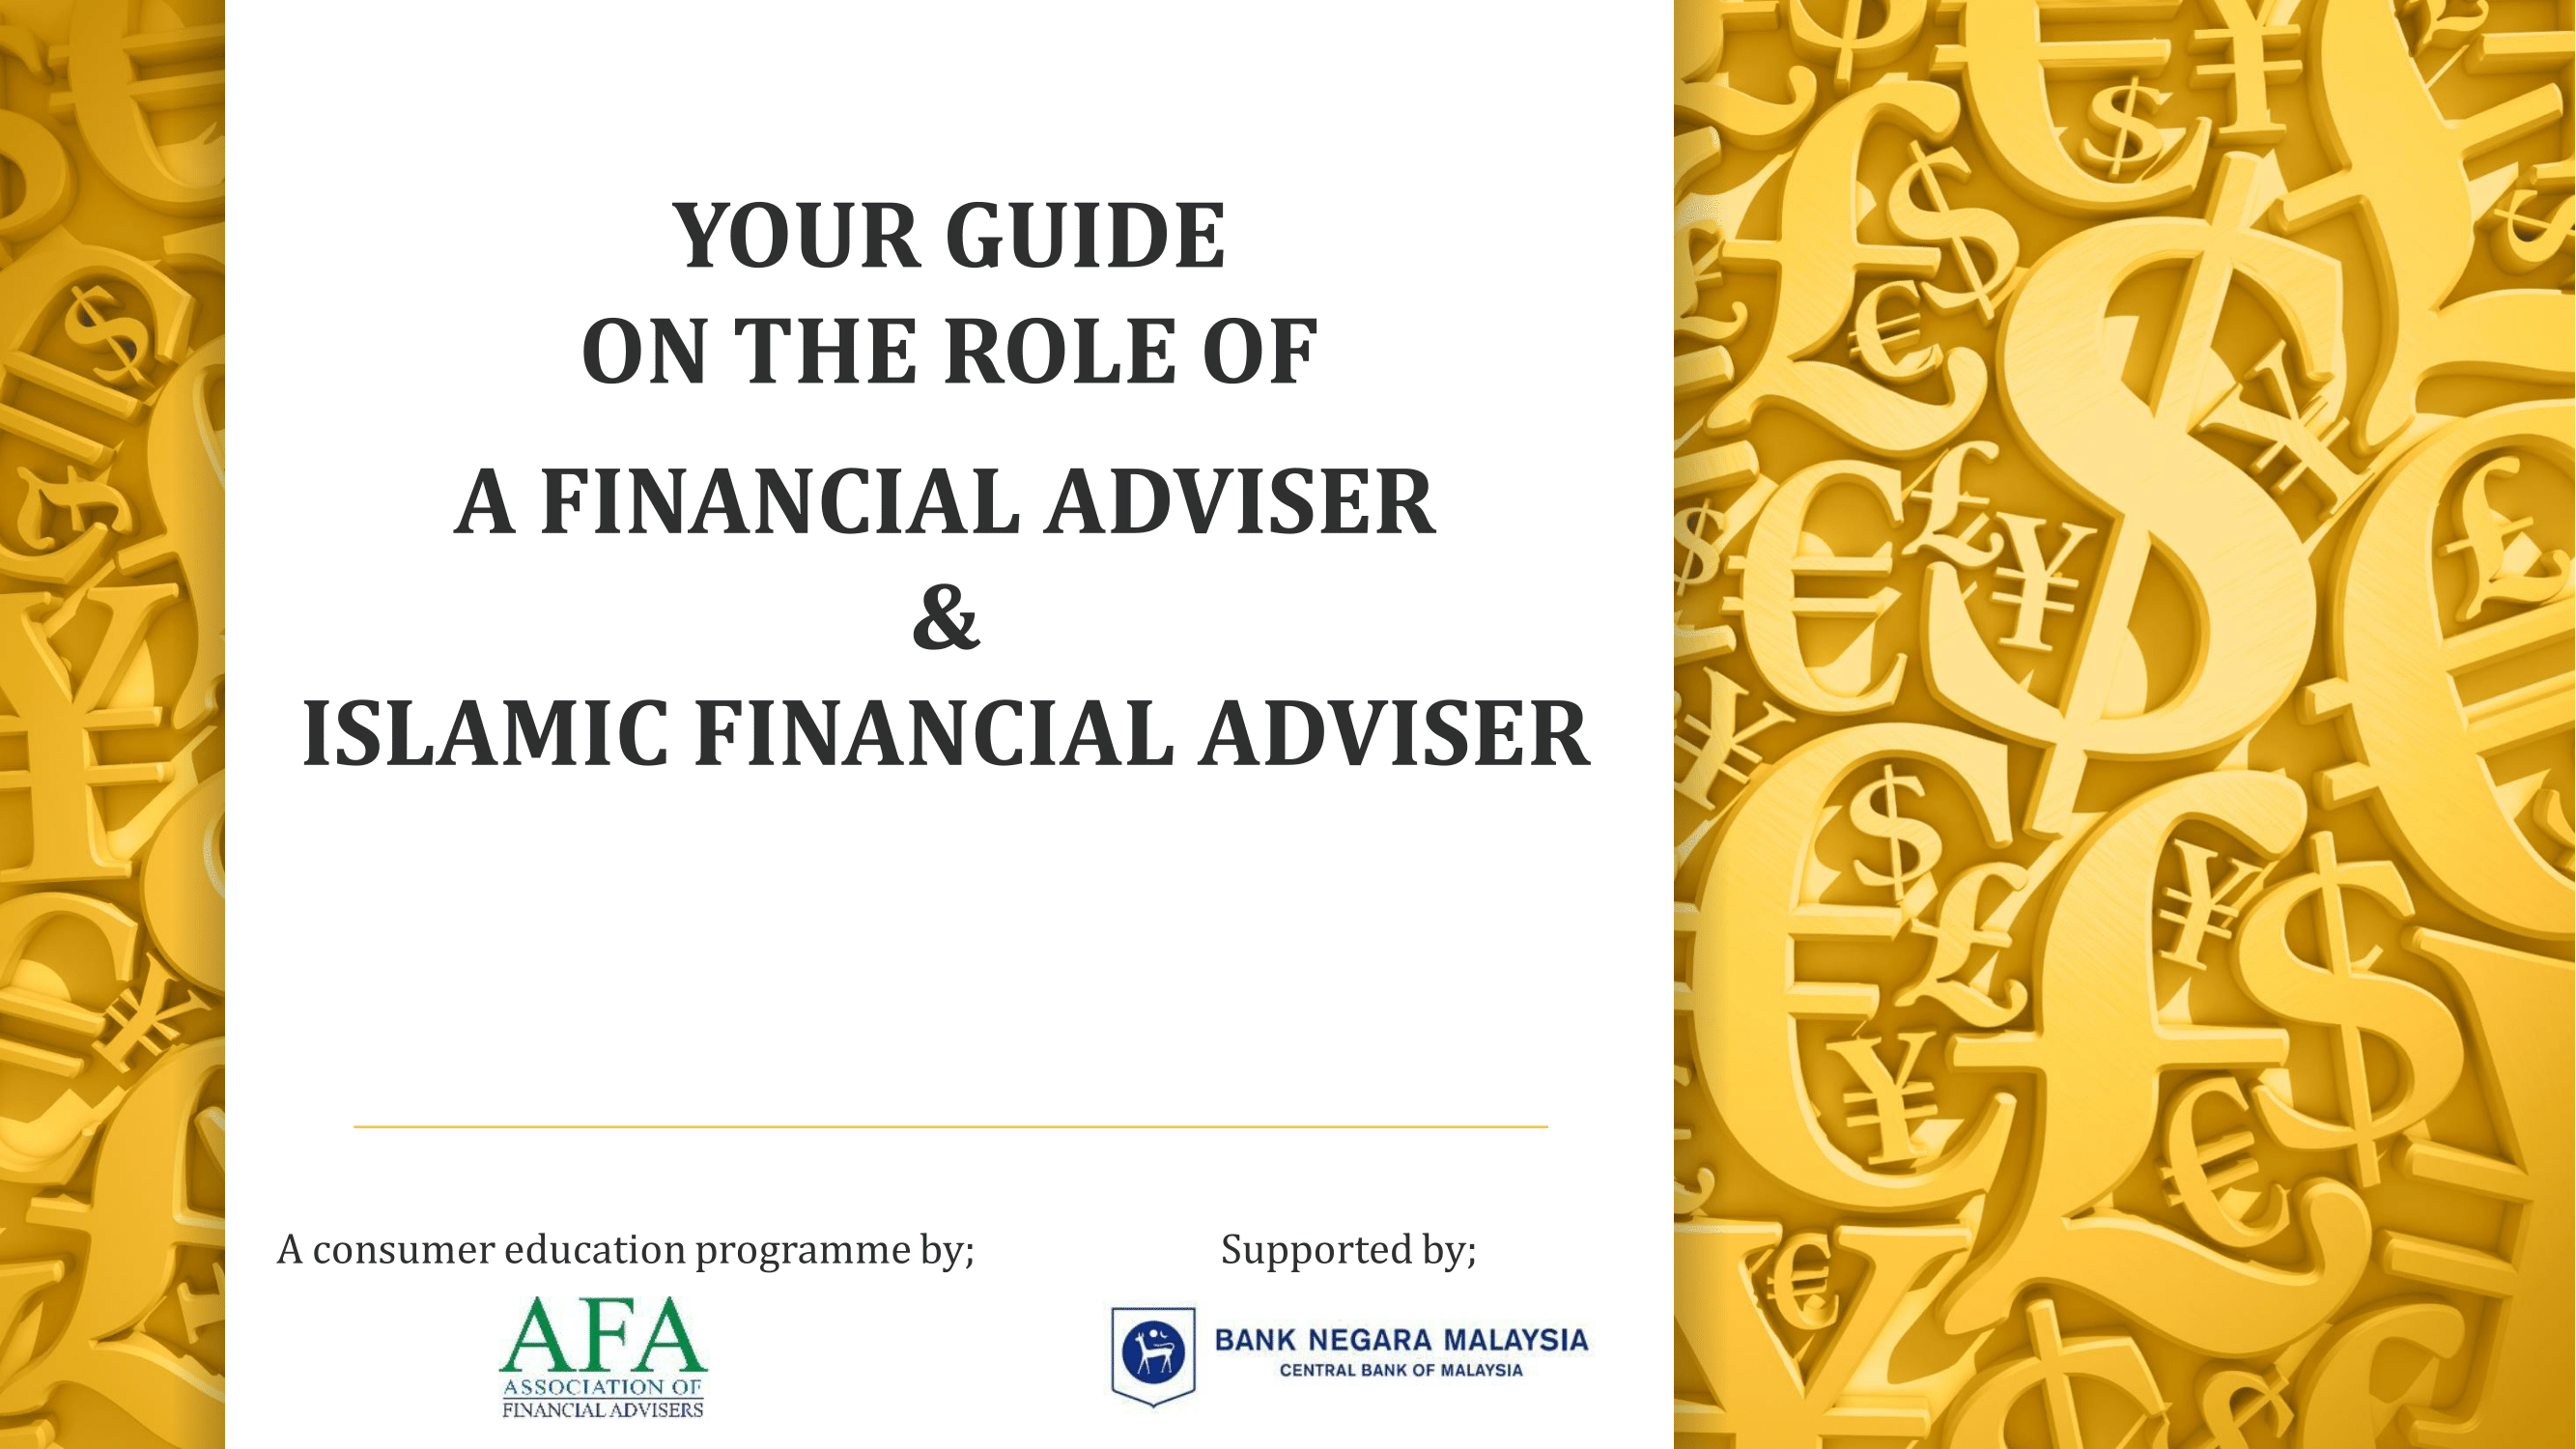 Financial Adviser Booklet (Updated 09.10.2014)_FINAL_v2-01